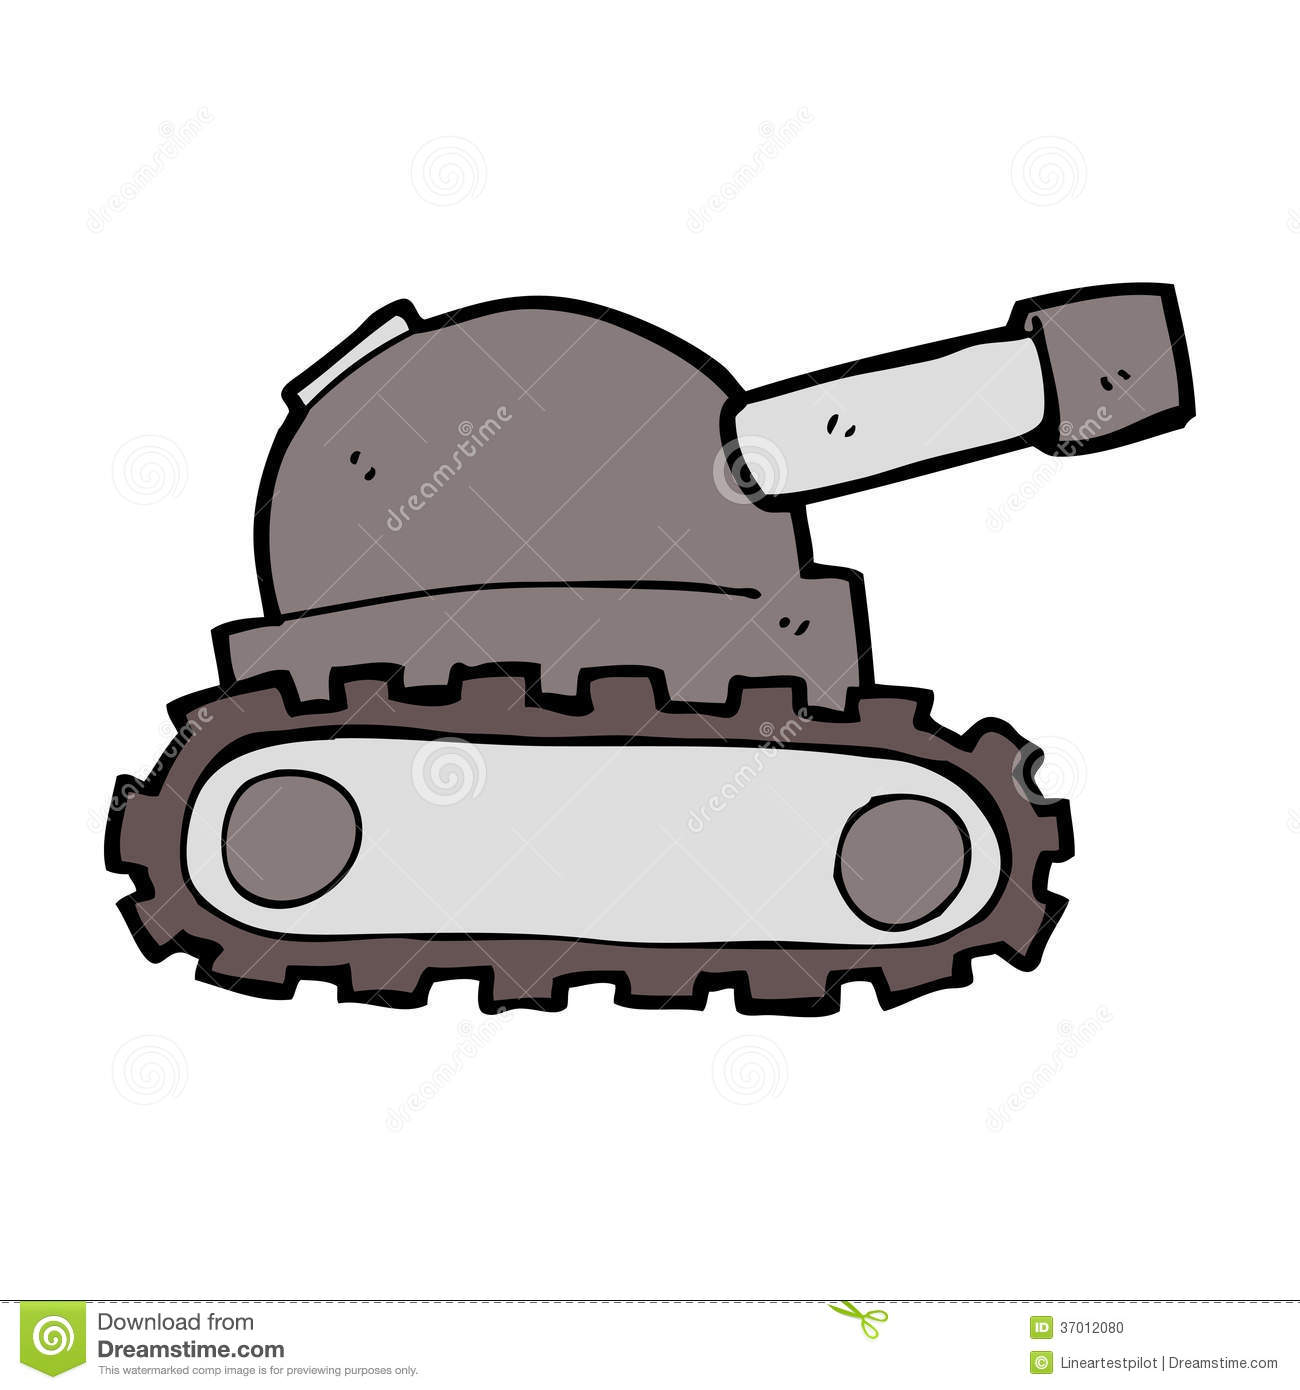 Cartoon tank stock vector. Image of hand, character ...